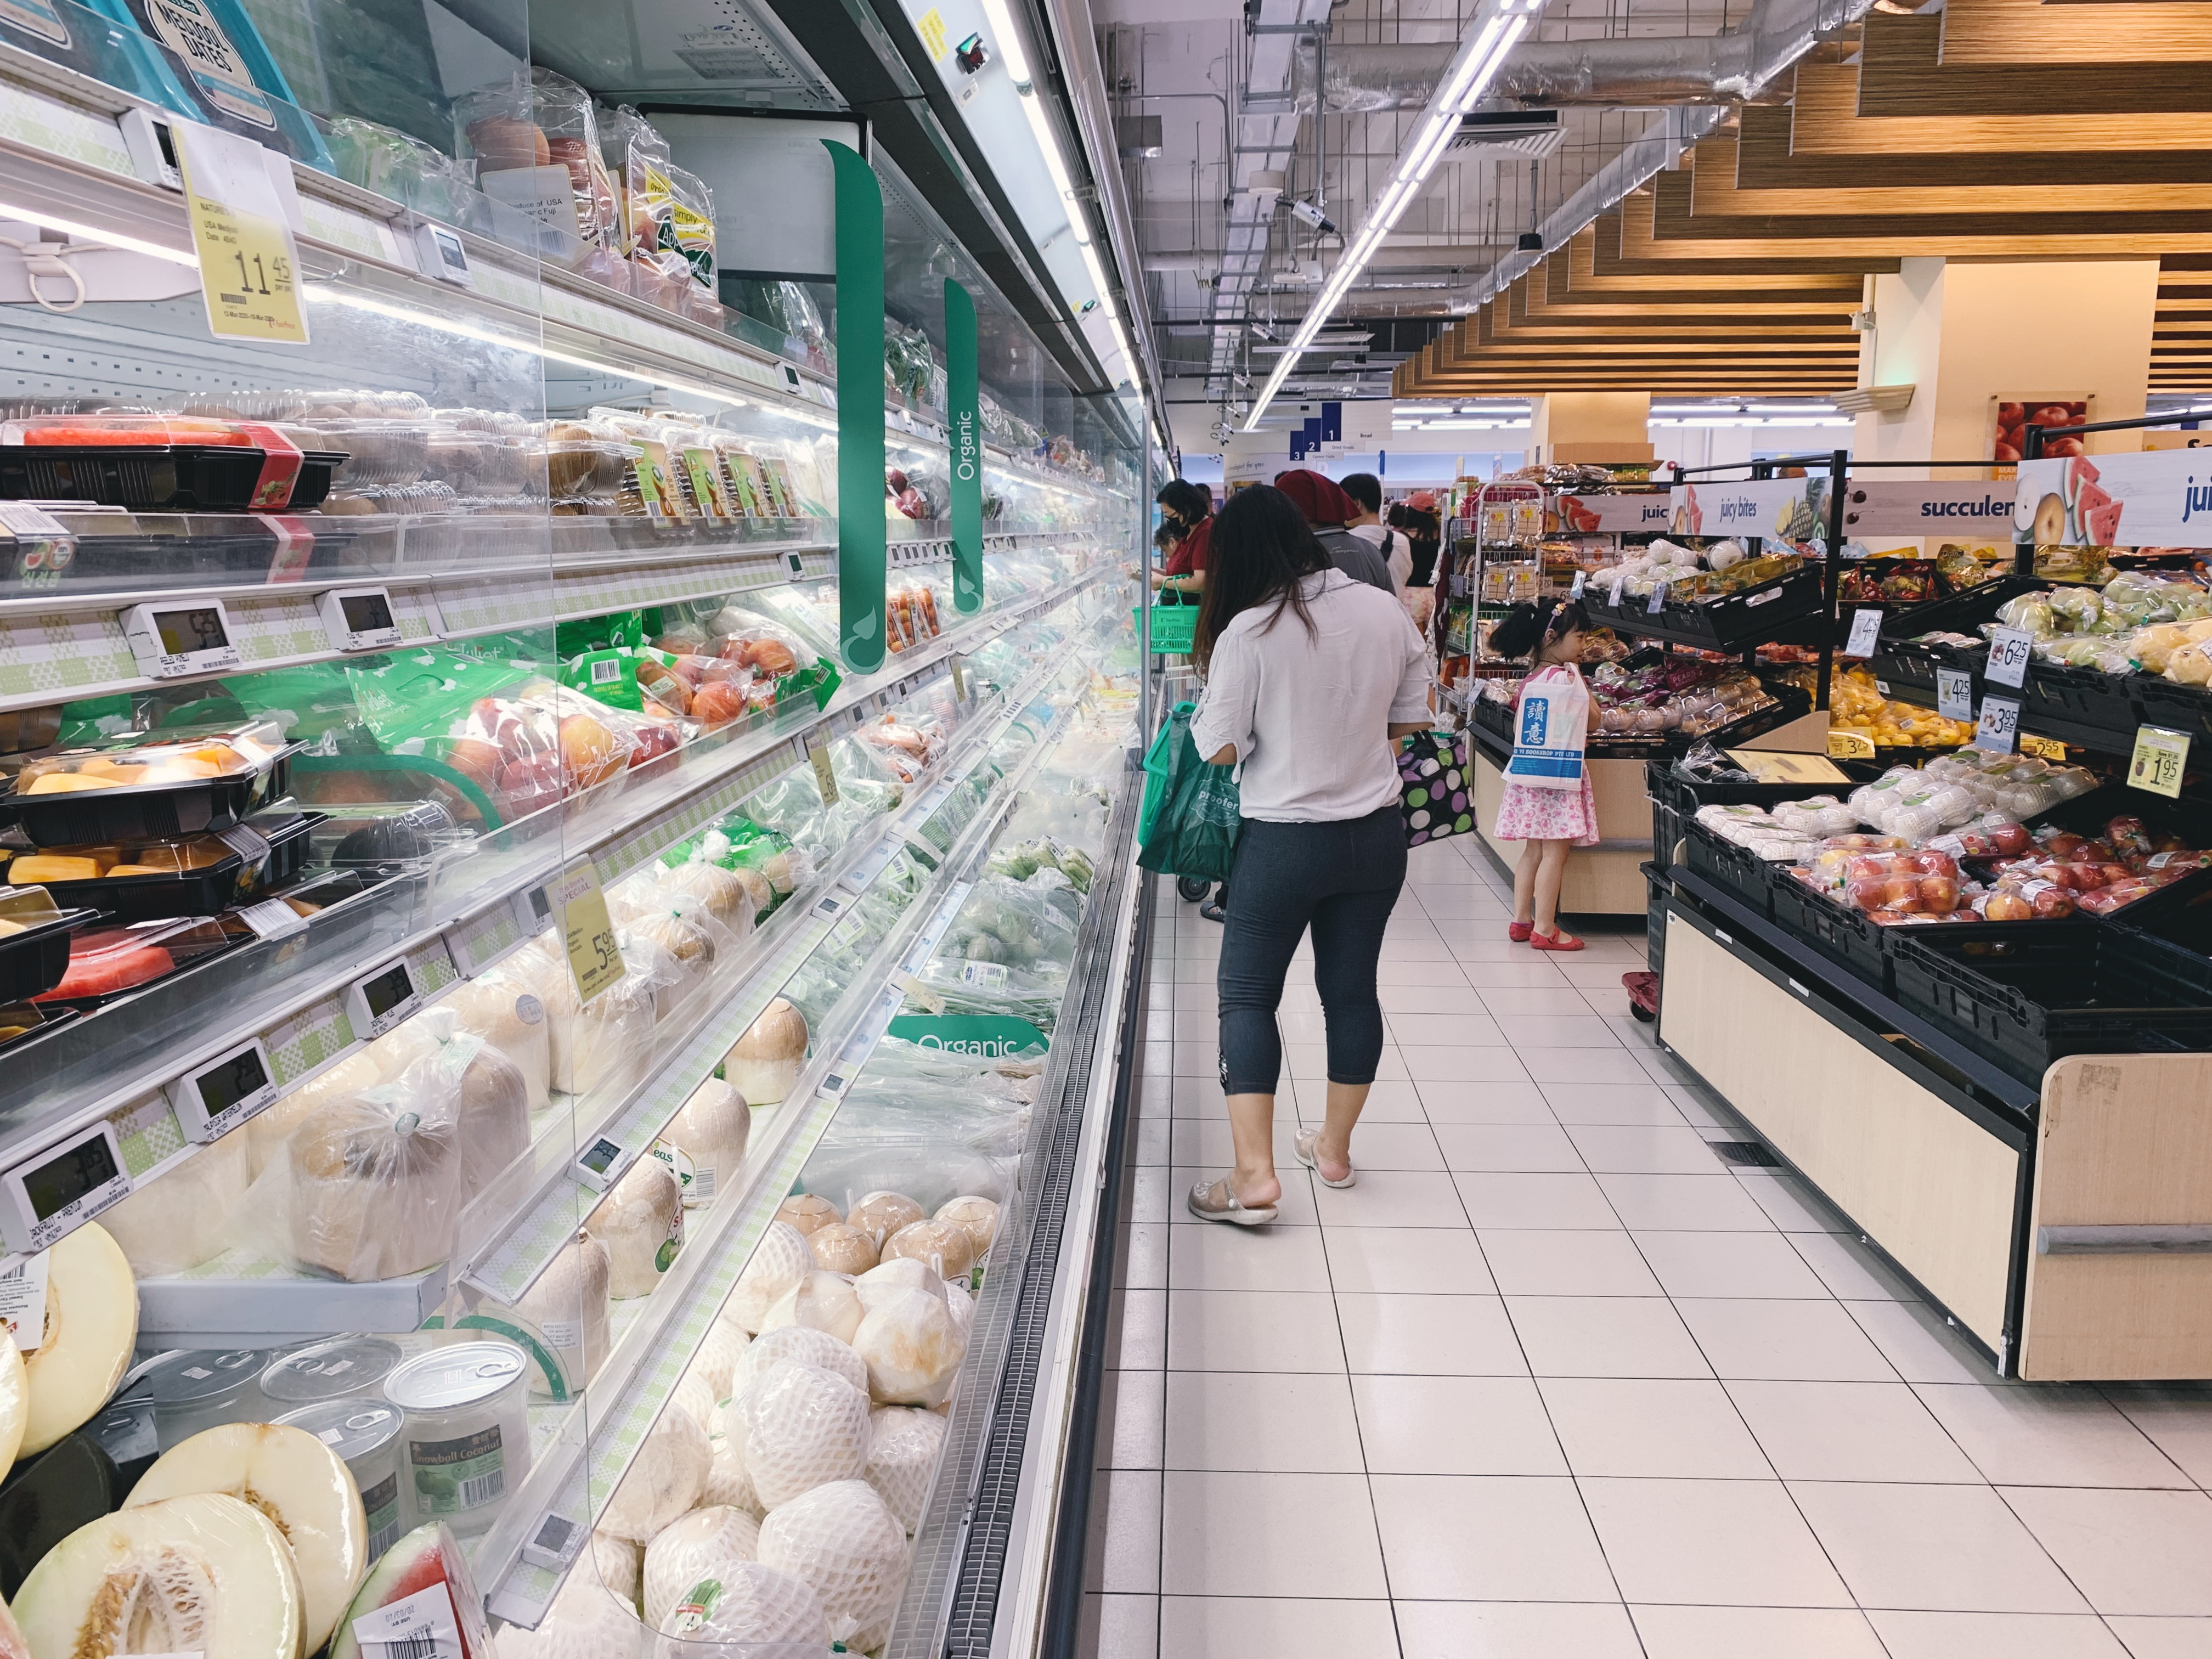 NTUC Fairprice at Hillion Mall was relatively empty on the afternoon of March 17, Tuesday. Photo: Connected to India